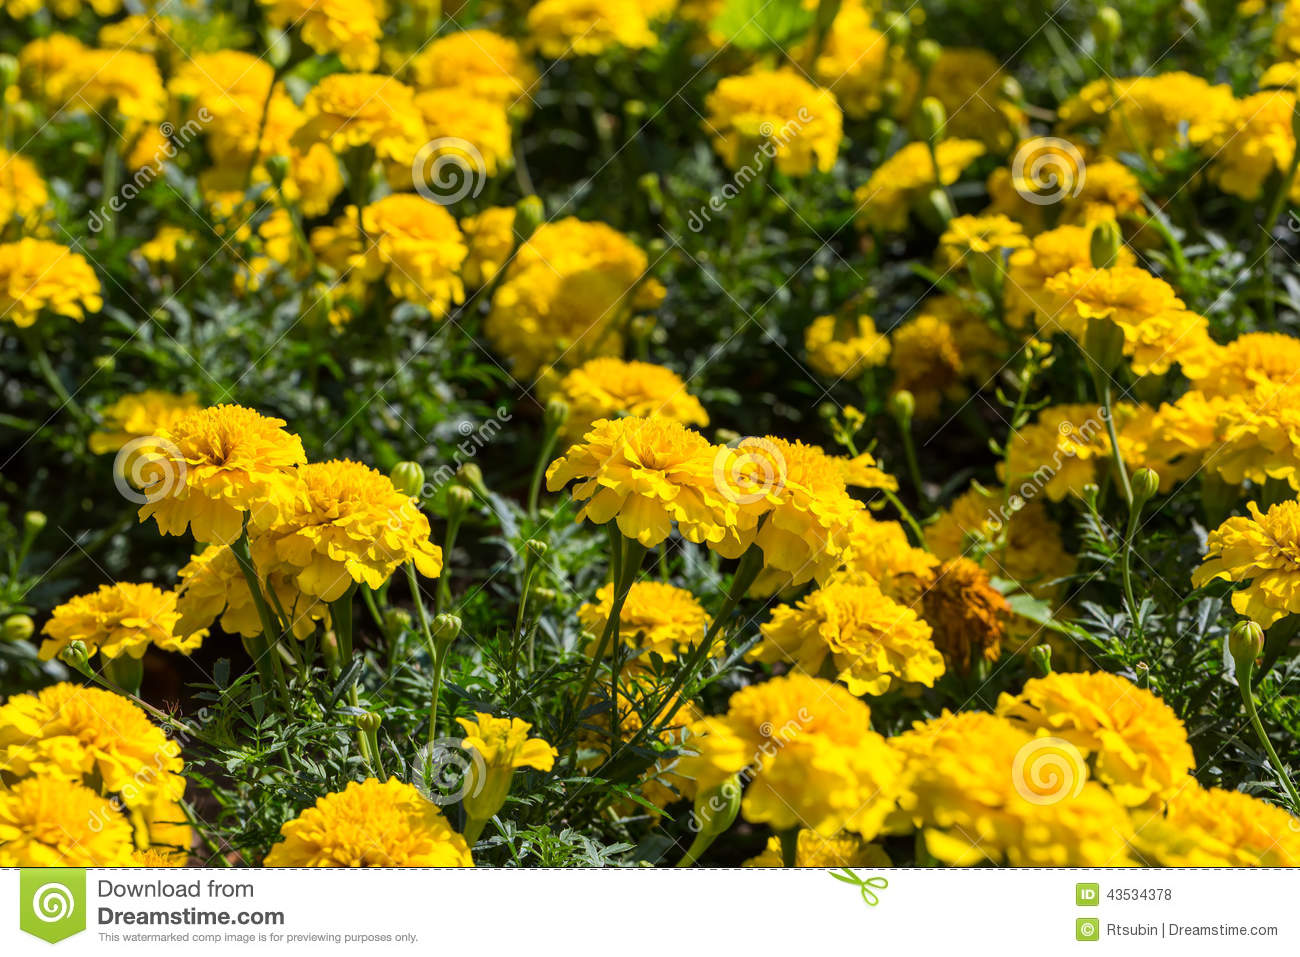 yellow aster flowers in the garden as background. stock photo, Beautiful flower